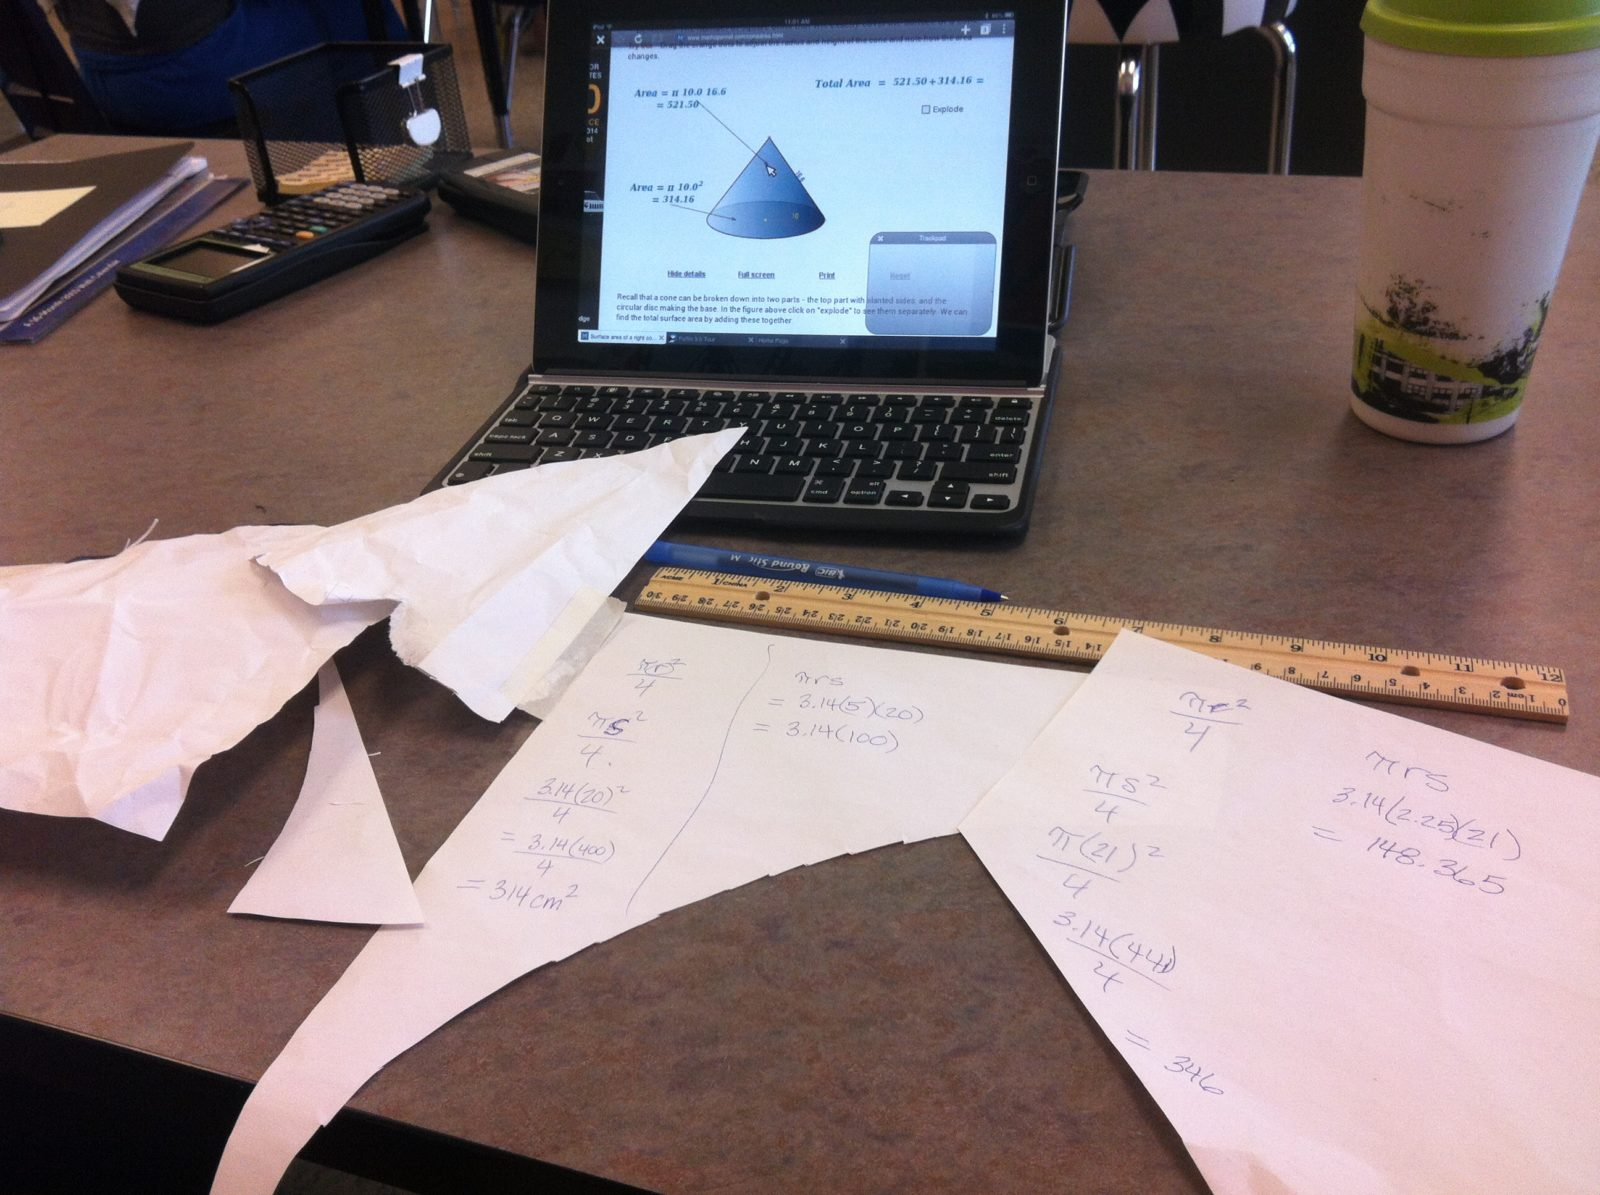 In The Past, I Have Always Engaged My Students With Interactive Activities  To Help Them Understand How The Formula For Volume Of A Prism Is Related To  The